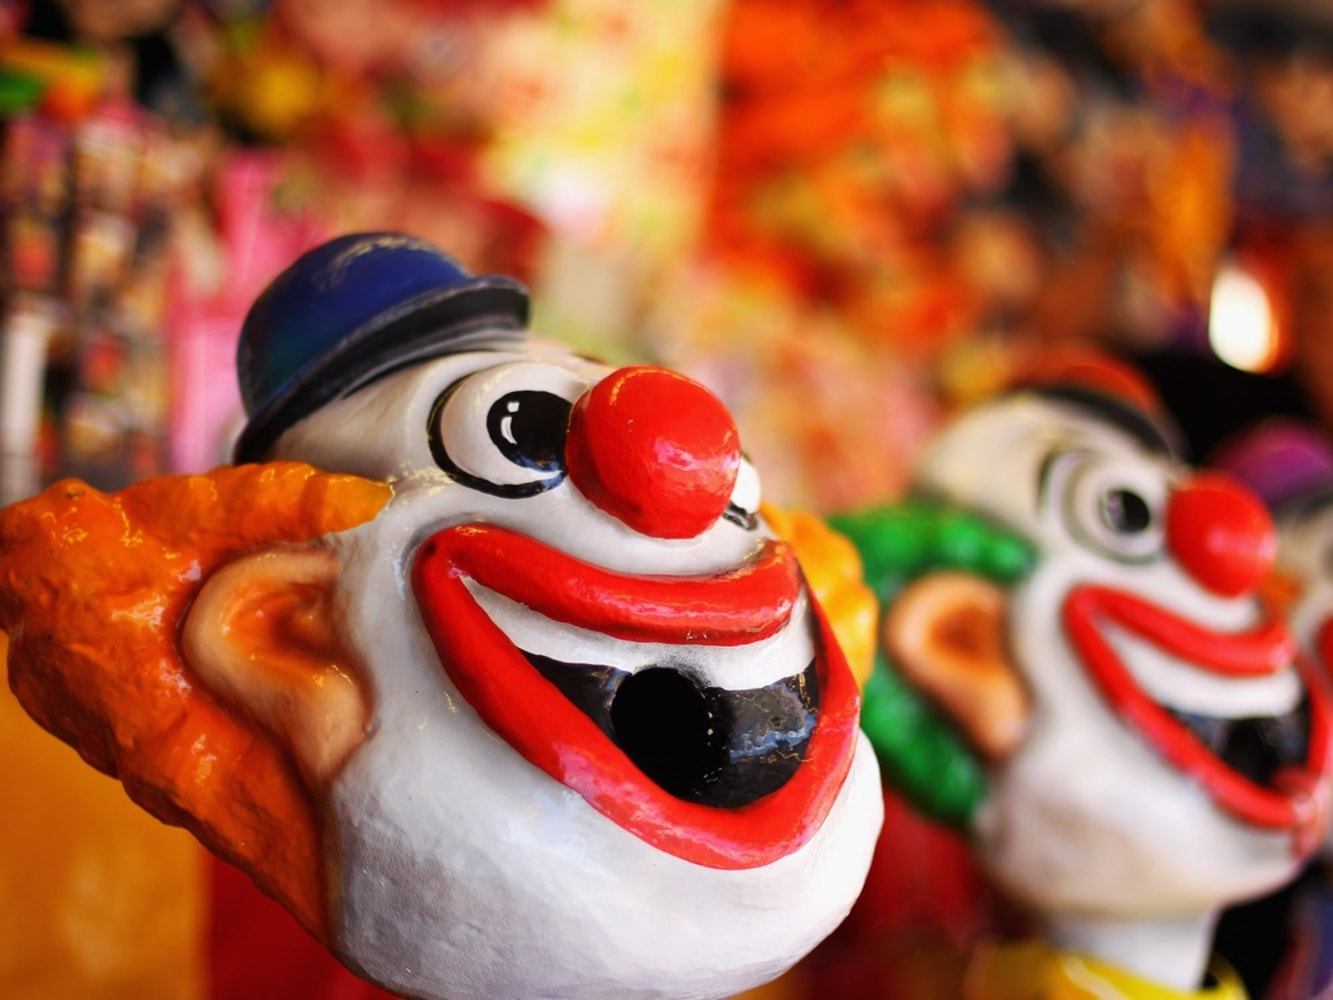 clown phobia Coulrophobia online test complete this test to determine whether or not your case of clown phobia is severe only a doctor can provide a formal coulrophobic diagnosis – but this will give you a good indication of the scope of the problem.